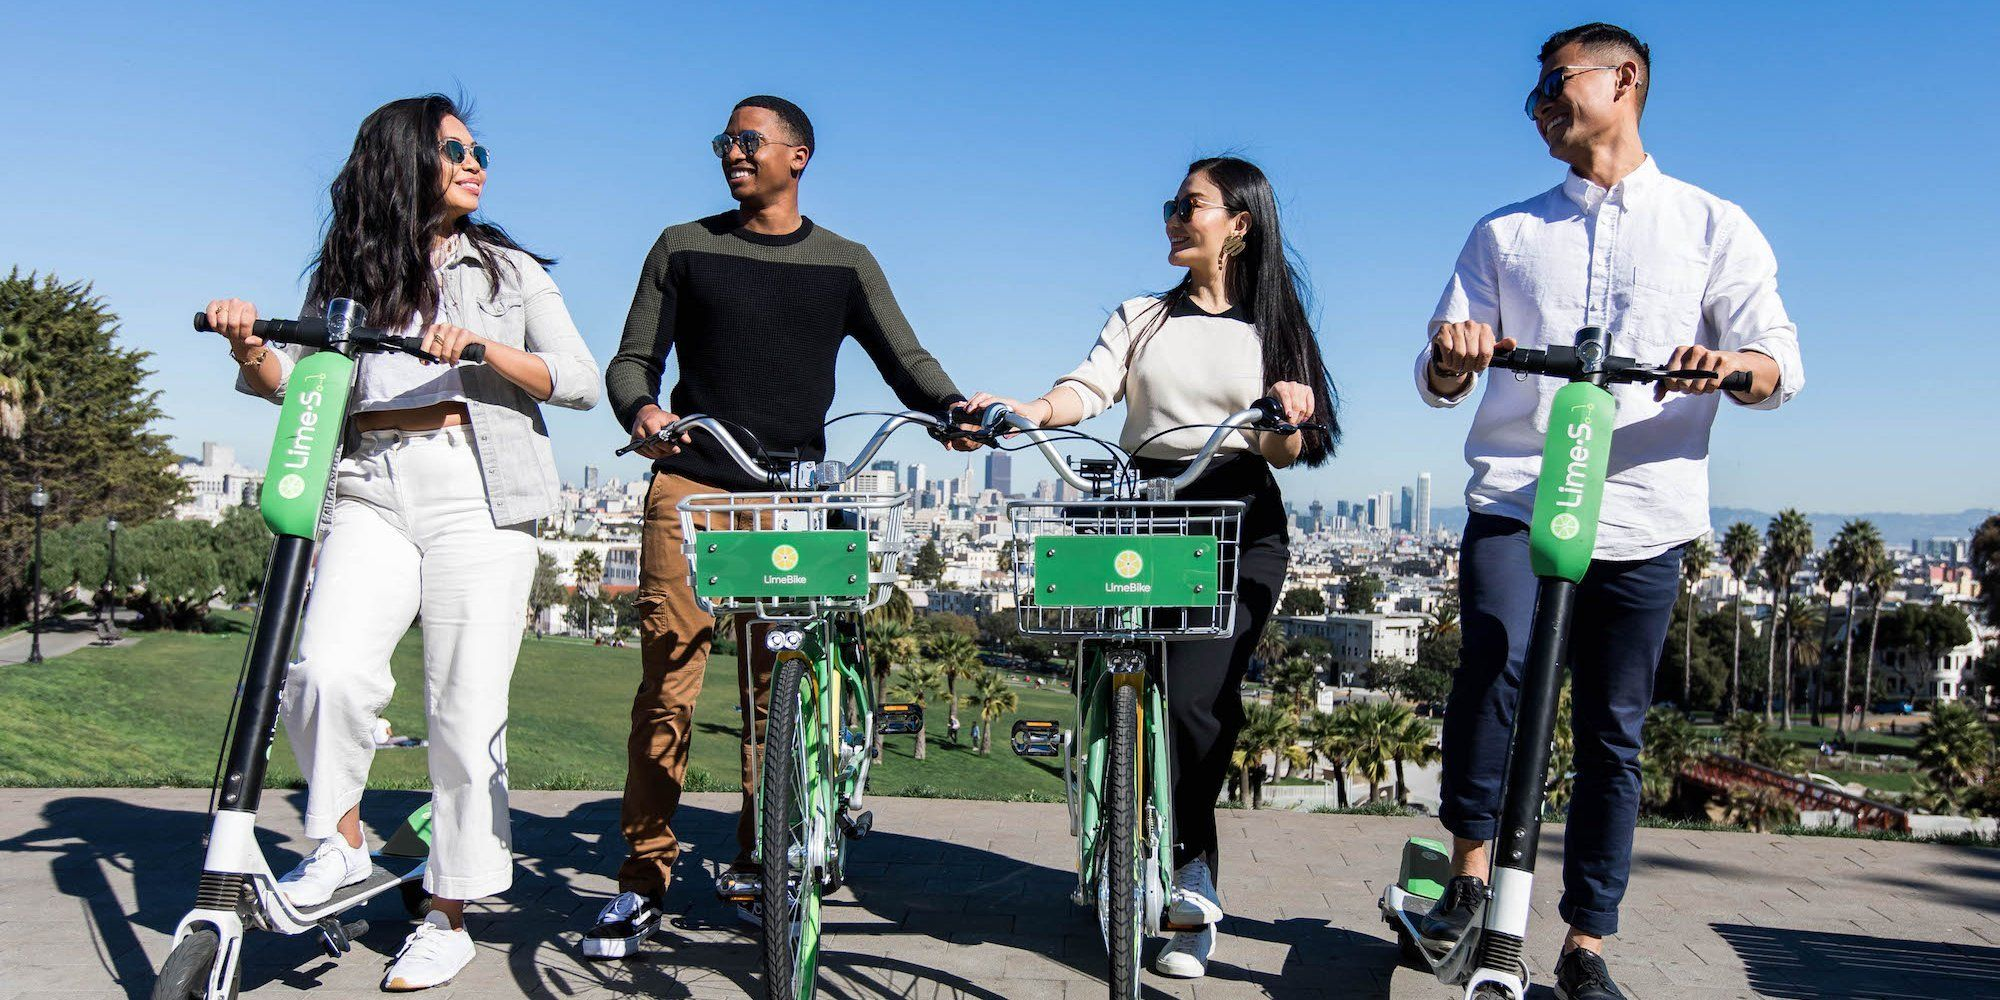 Limebike Scooters Have Secret Alarms Built In That Blare Loud